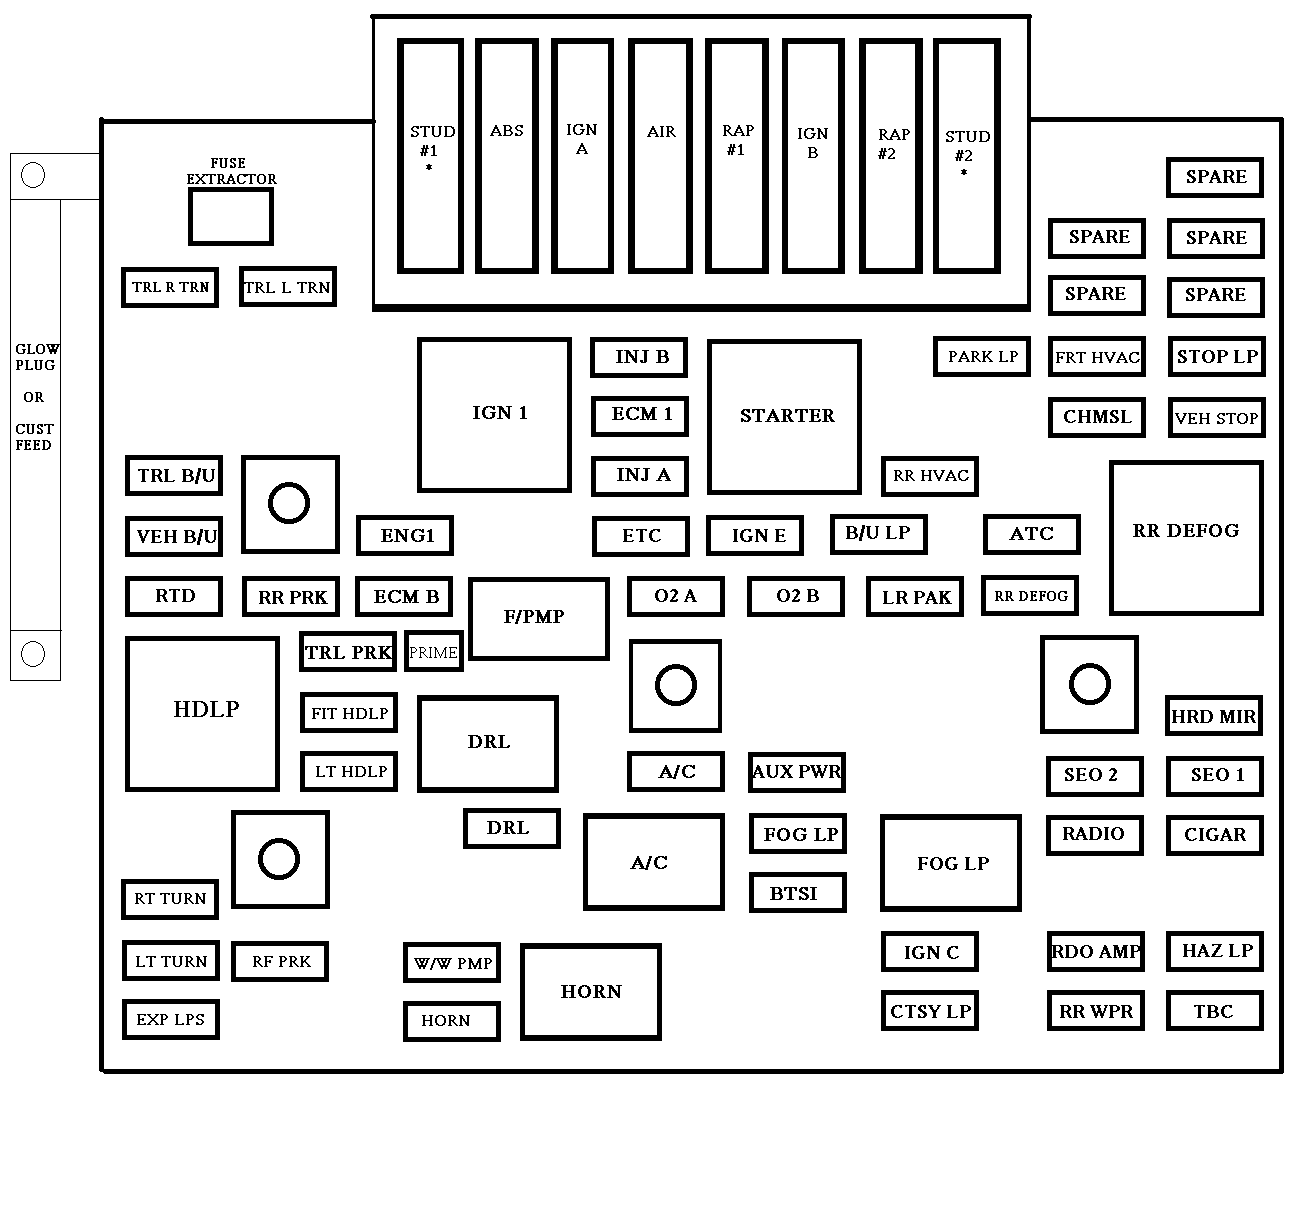 2002 Tahoe Radio Wiring Diagram from static-resources.imageservice.cloud